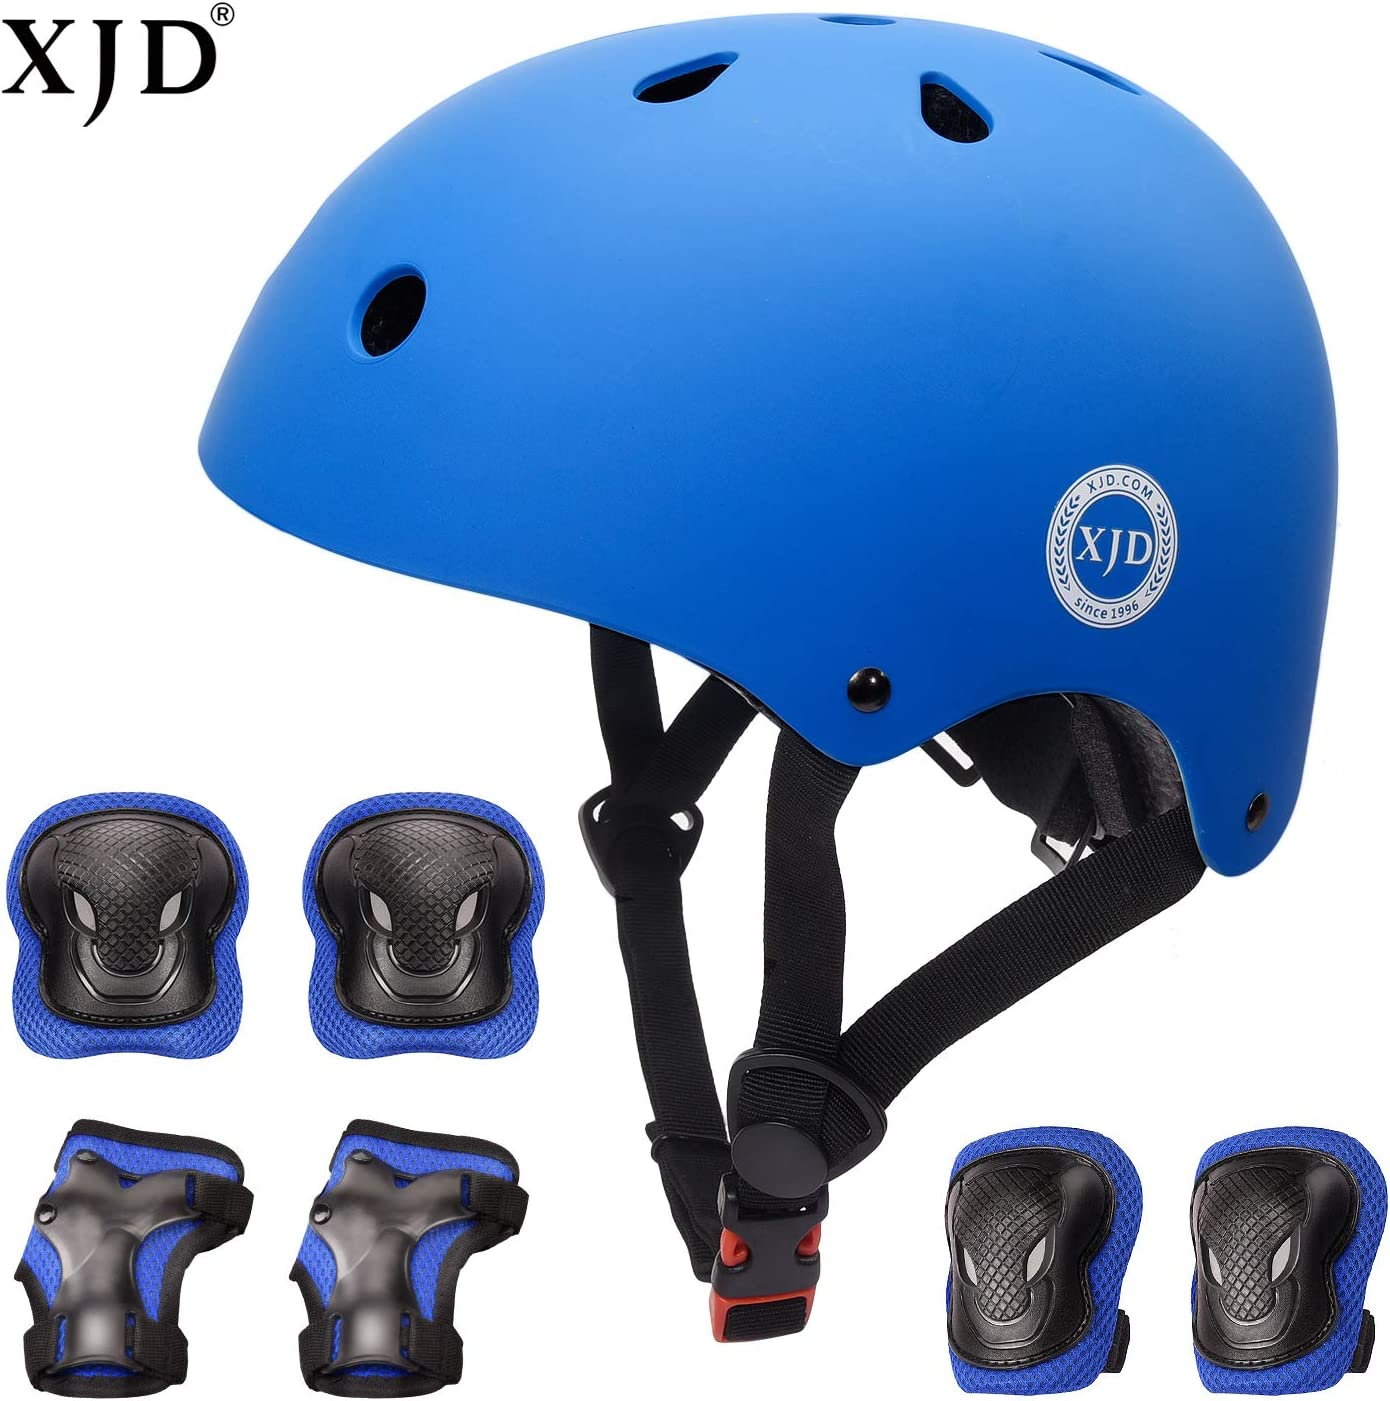 XJD Kids Bike Helmet Toddler Helmet for Kids 3-13 Years Sport Protective Gear Set Boy Girl Adjustable Child Cycling Helmet with Knee Pads Elbow Pads Wrist Guards Youth Skateboard Helmet CPSC Certified